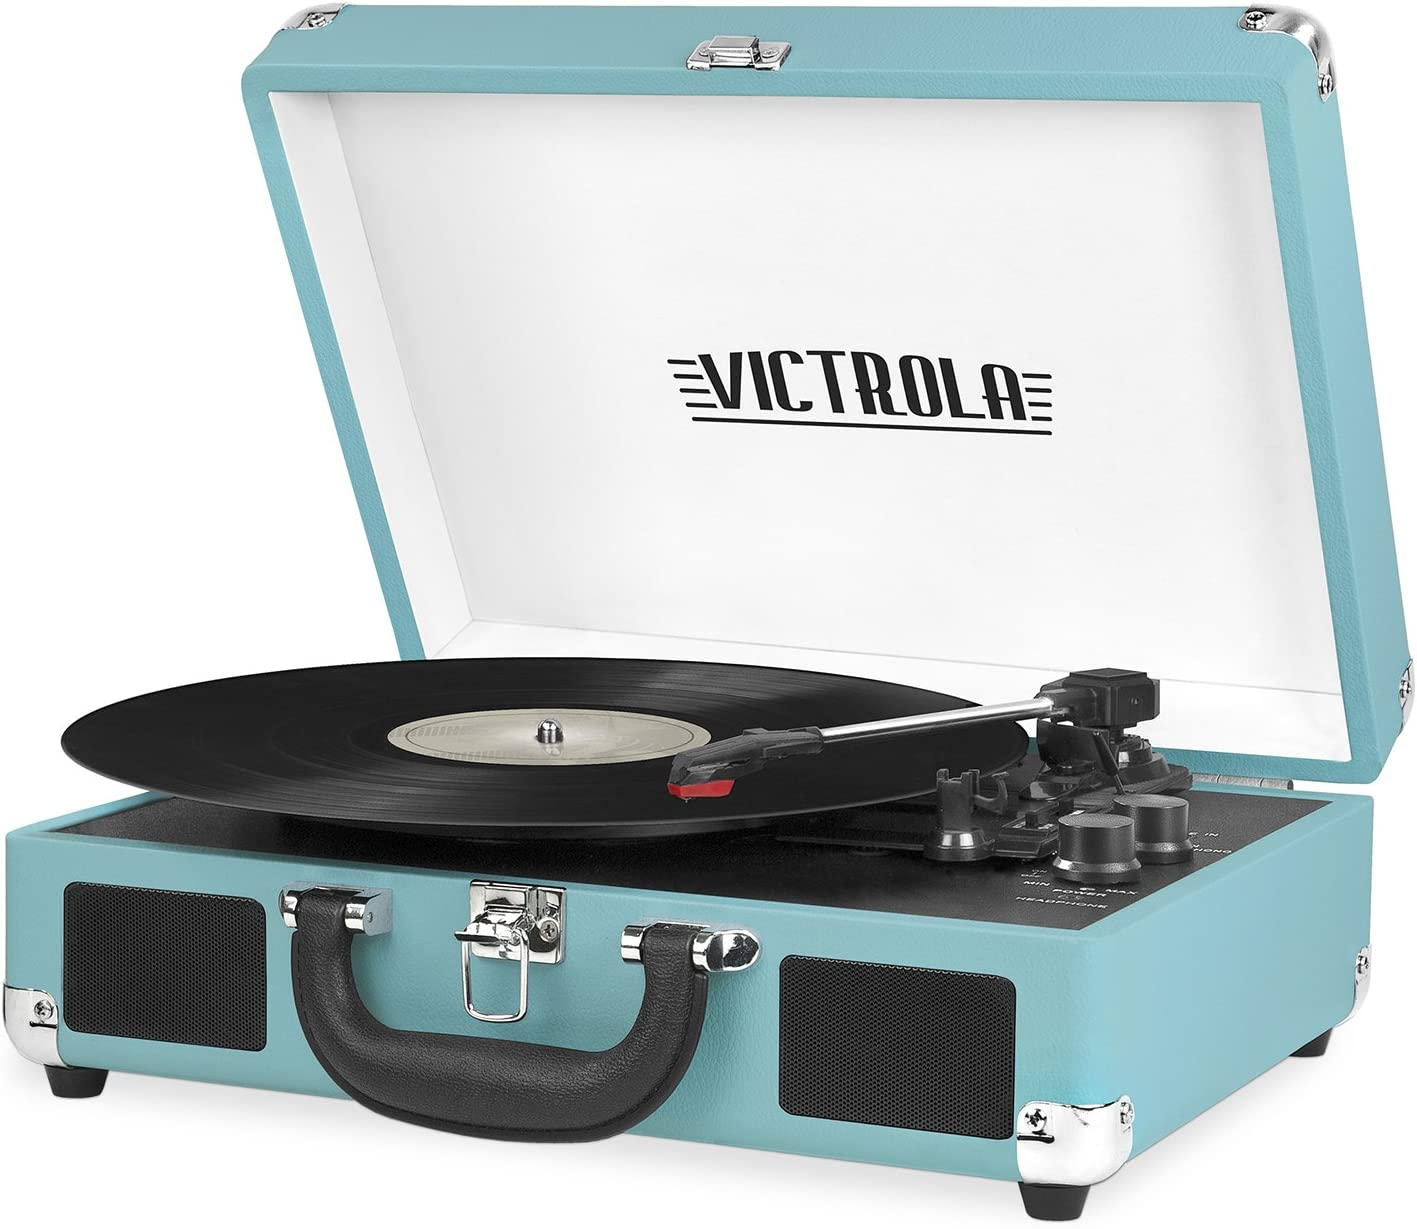 Victrola Vintage 3-Speed Bluetooth Portable Suitcase Record Player with Built-in Speakers | Upgraded Turntable Audio Sound| Includes Extra Stylus | Aqua Turquoise